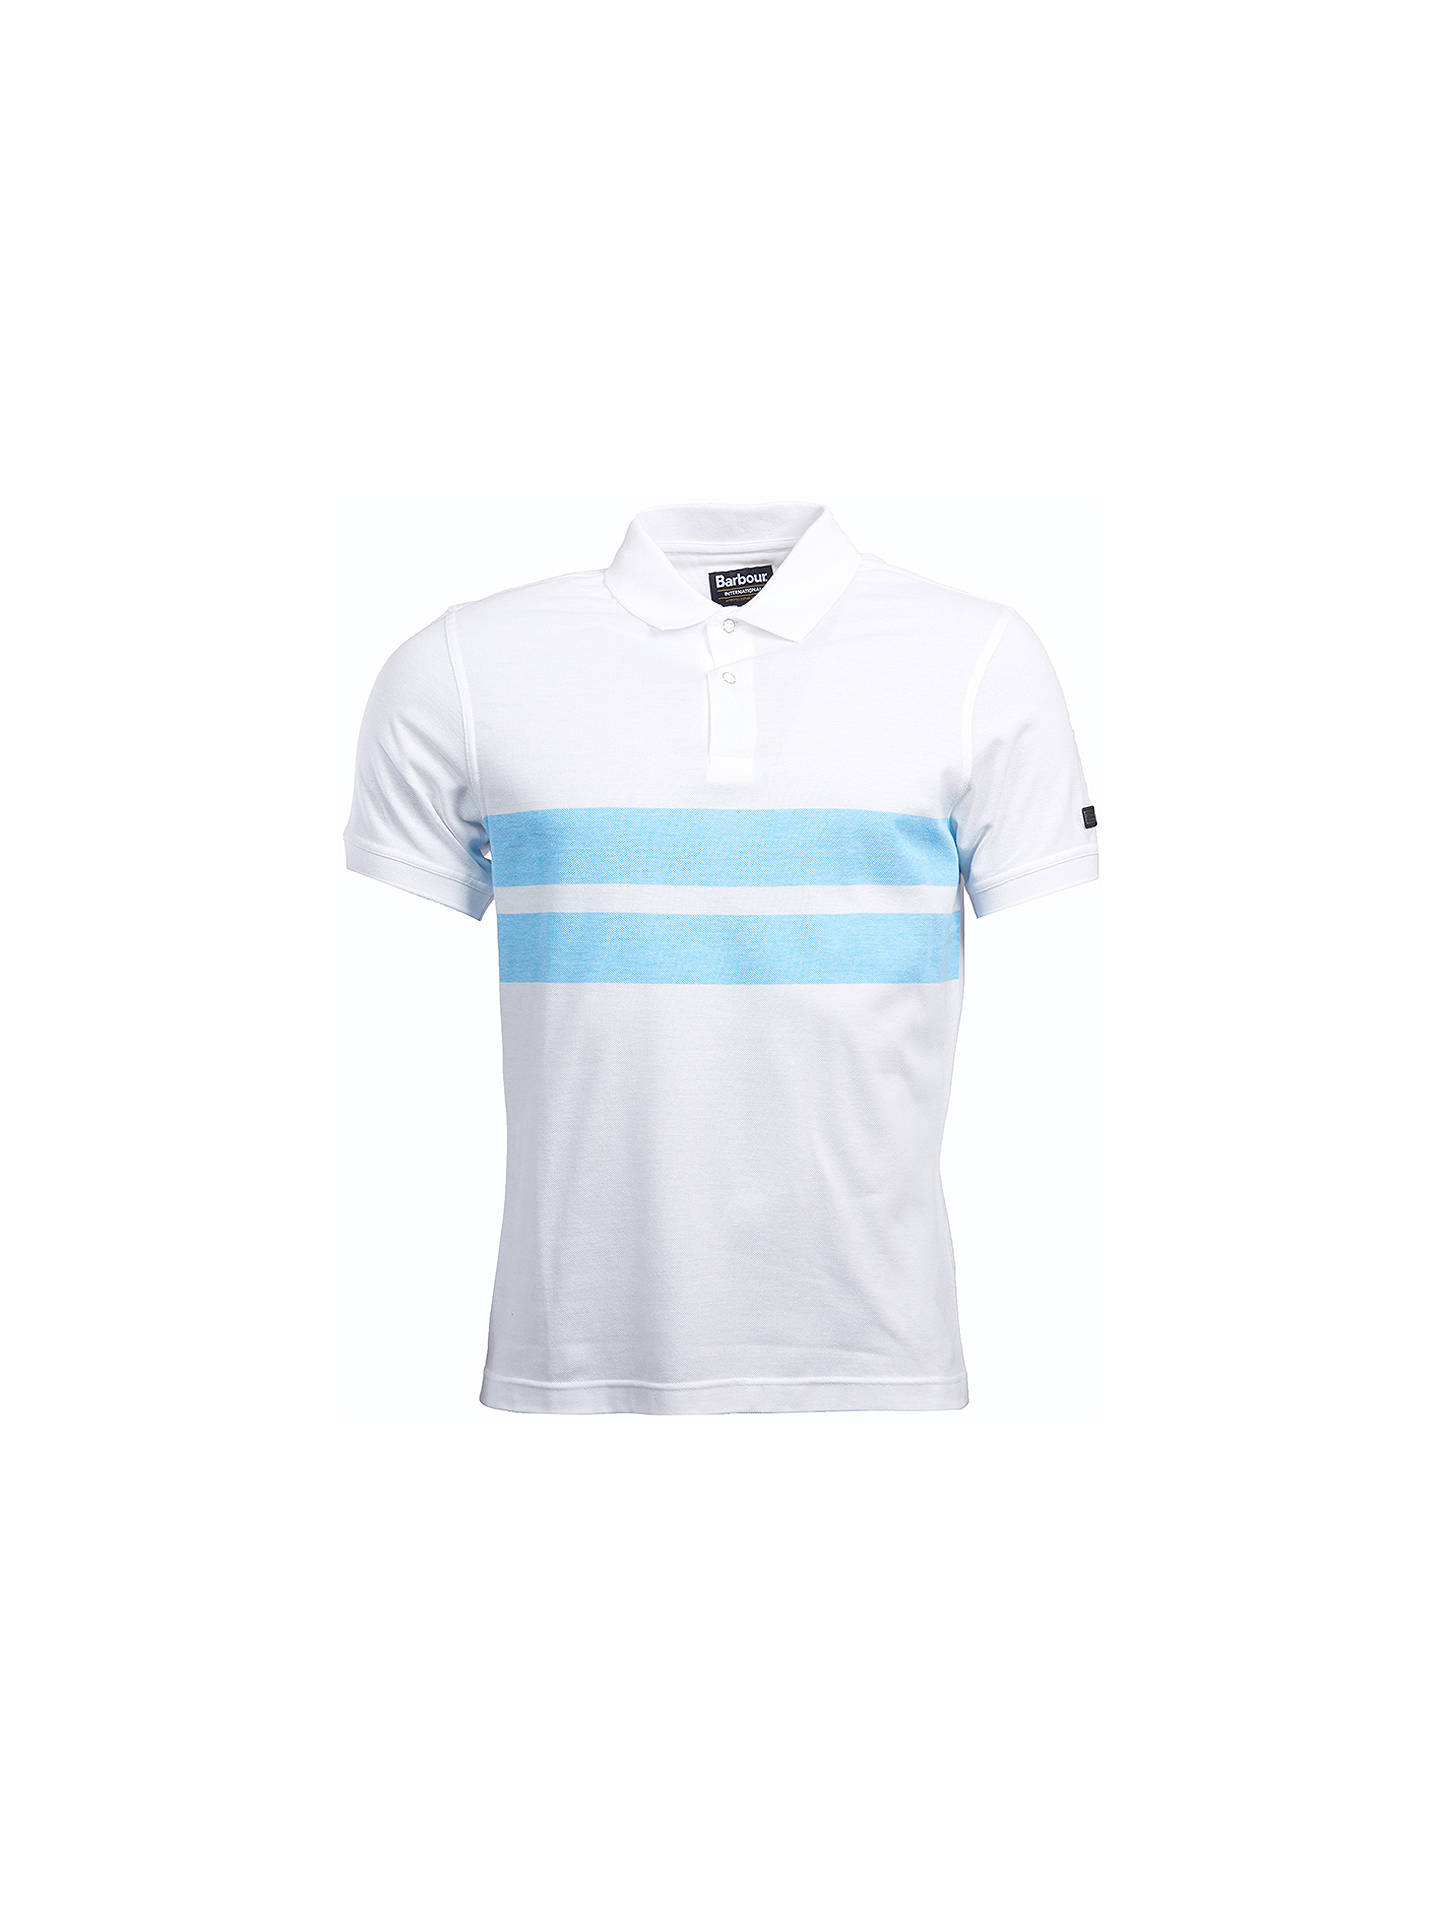 BuyBarbour International Textured Stripe Polo Shirt, White, M Online at johnlewis.com